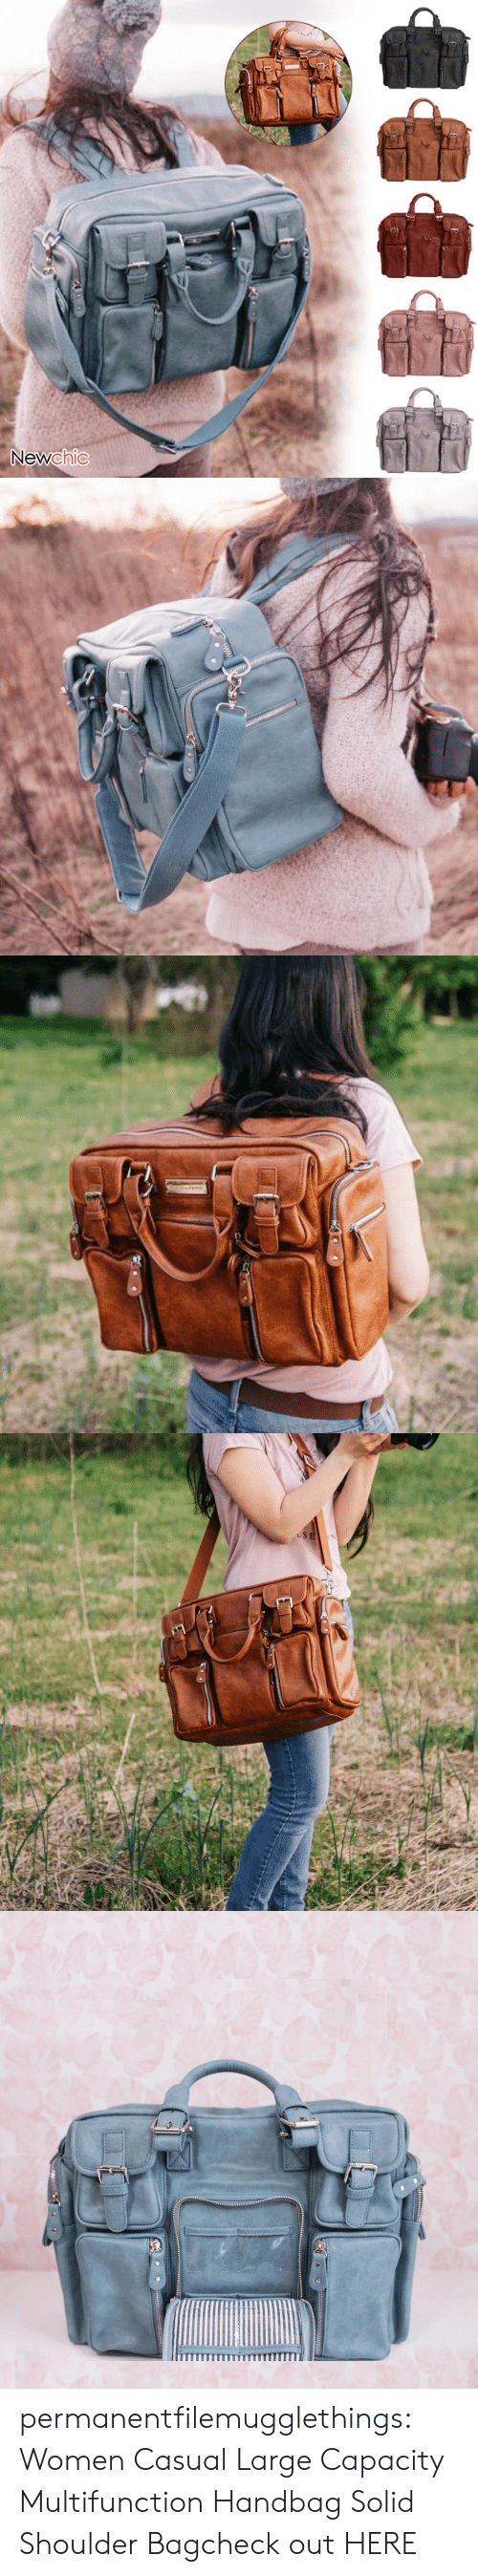 Tumblr, Blog, and Women: Newchic   USE permanentfilemugglethings:  Women Casual Large Capacity Multifunction Handbag Solid Shoulder Bagcheck out HERE